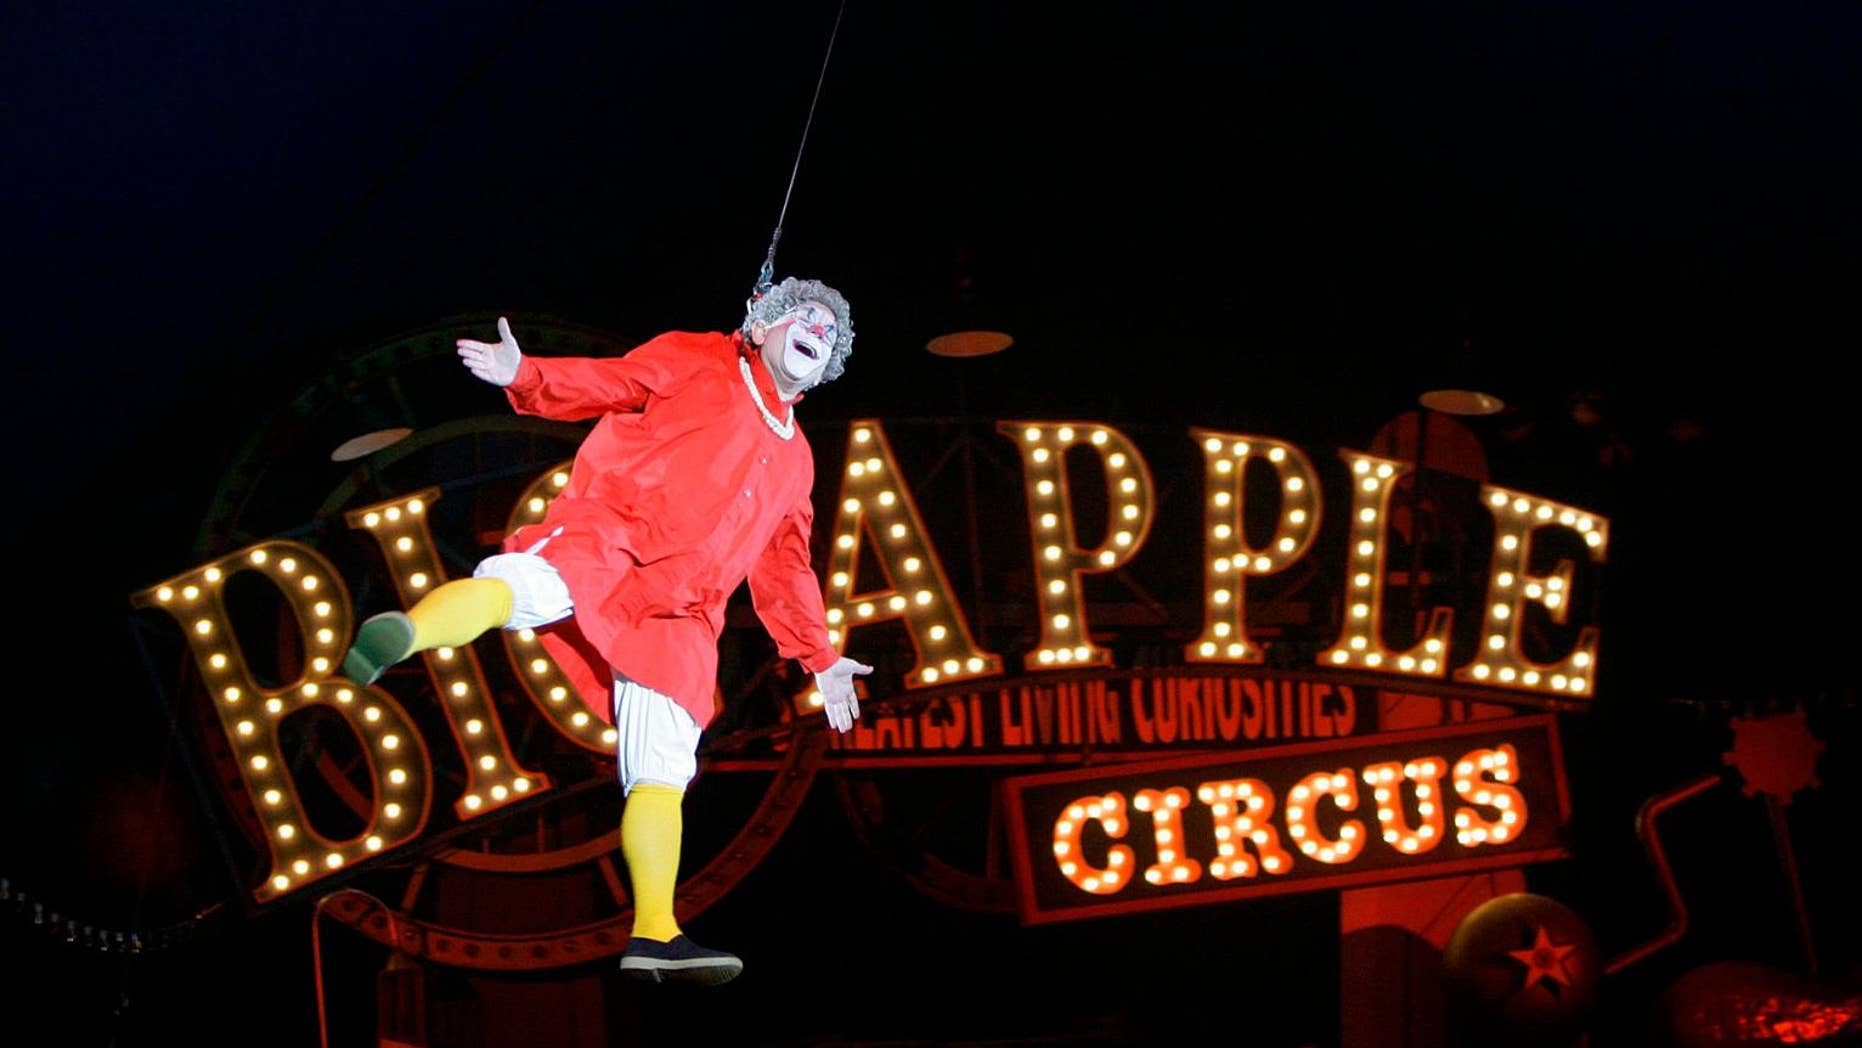 """This May 6, 2007 file photo shows Barry Lubin, as """"Grandma,"""" performing in the Big Apple Circus in Boston. (AP Photo/Chitose Suzuki, File)"""